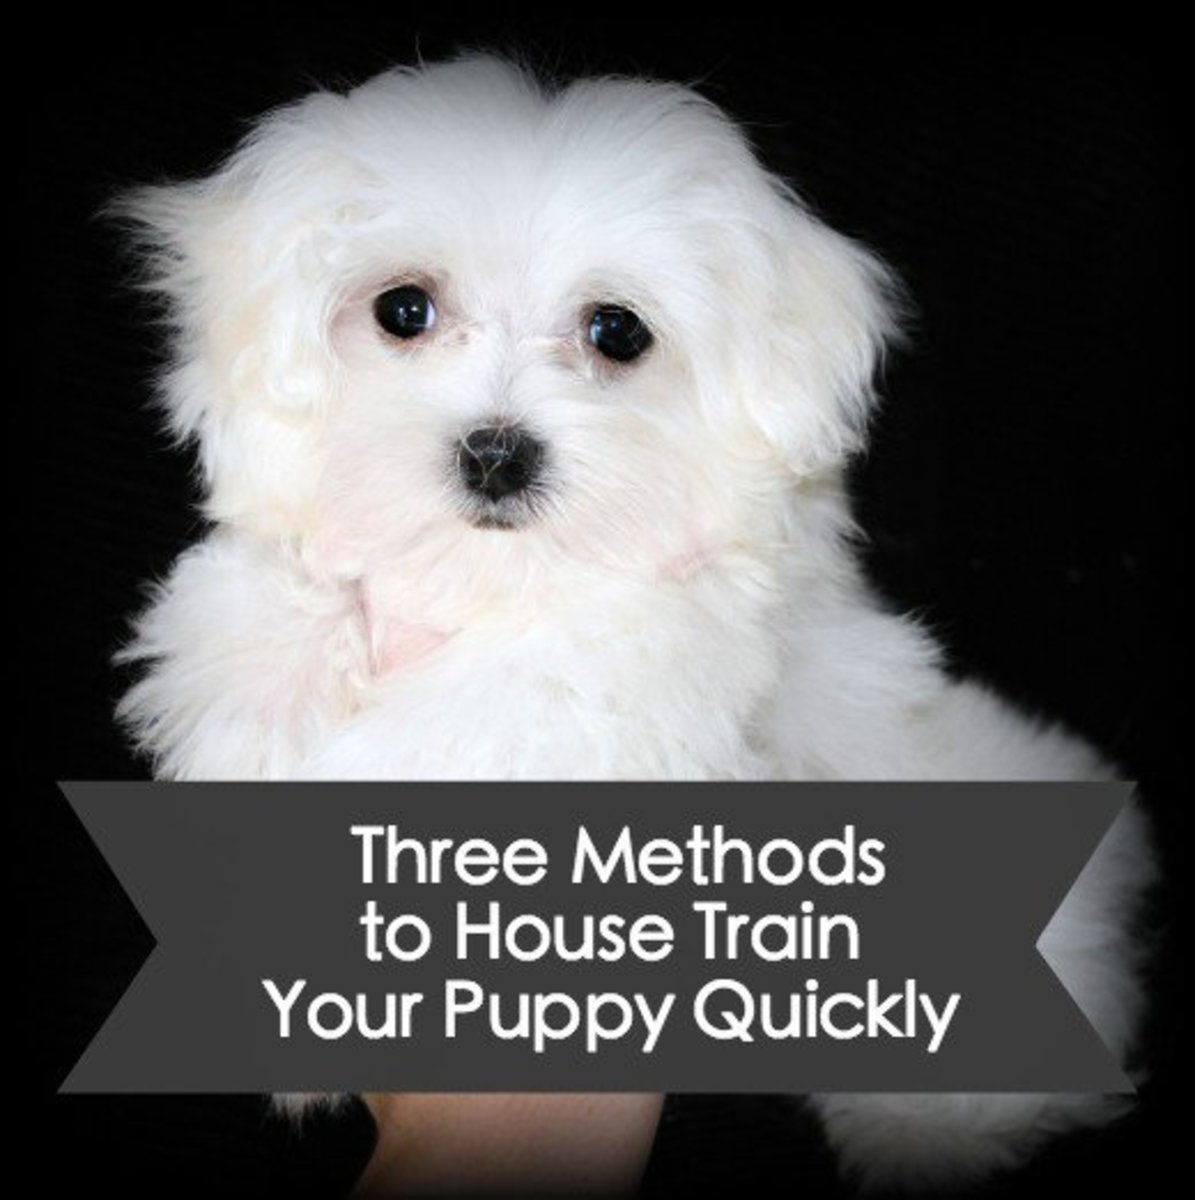 If you want to house train your puppy ASAP, try using the pee pad, crate, or doggie door methods. Learn more about these three methods in this article.